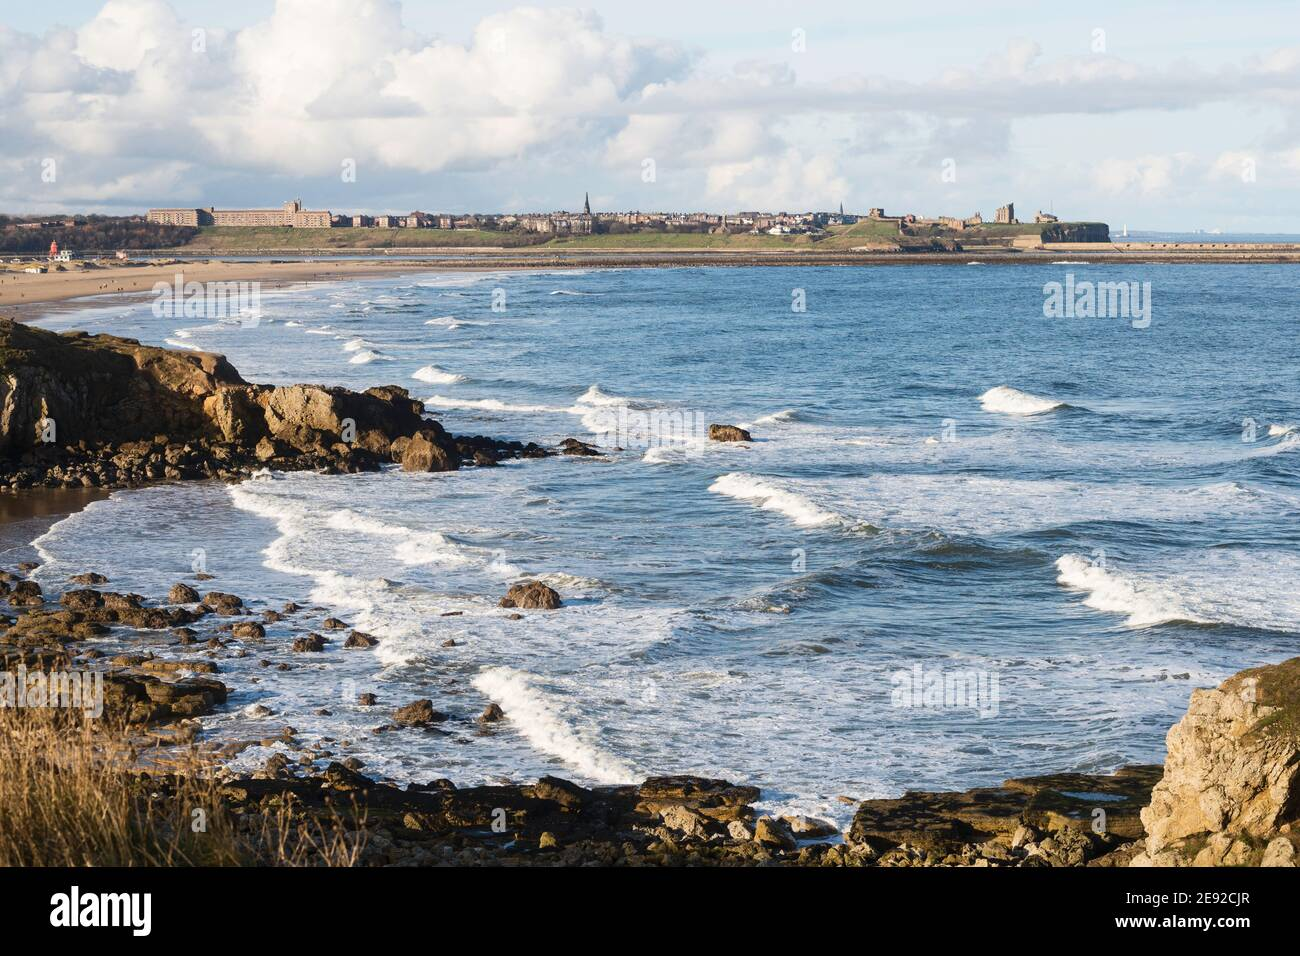 coastal-view-towards-tynemouth-from-the-leas-south-shields-north-east-england-uk-2E92CJR.jpg